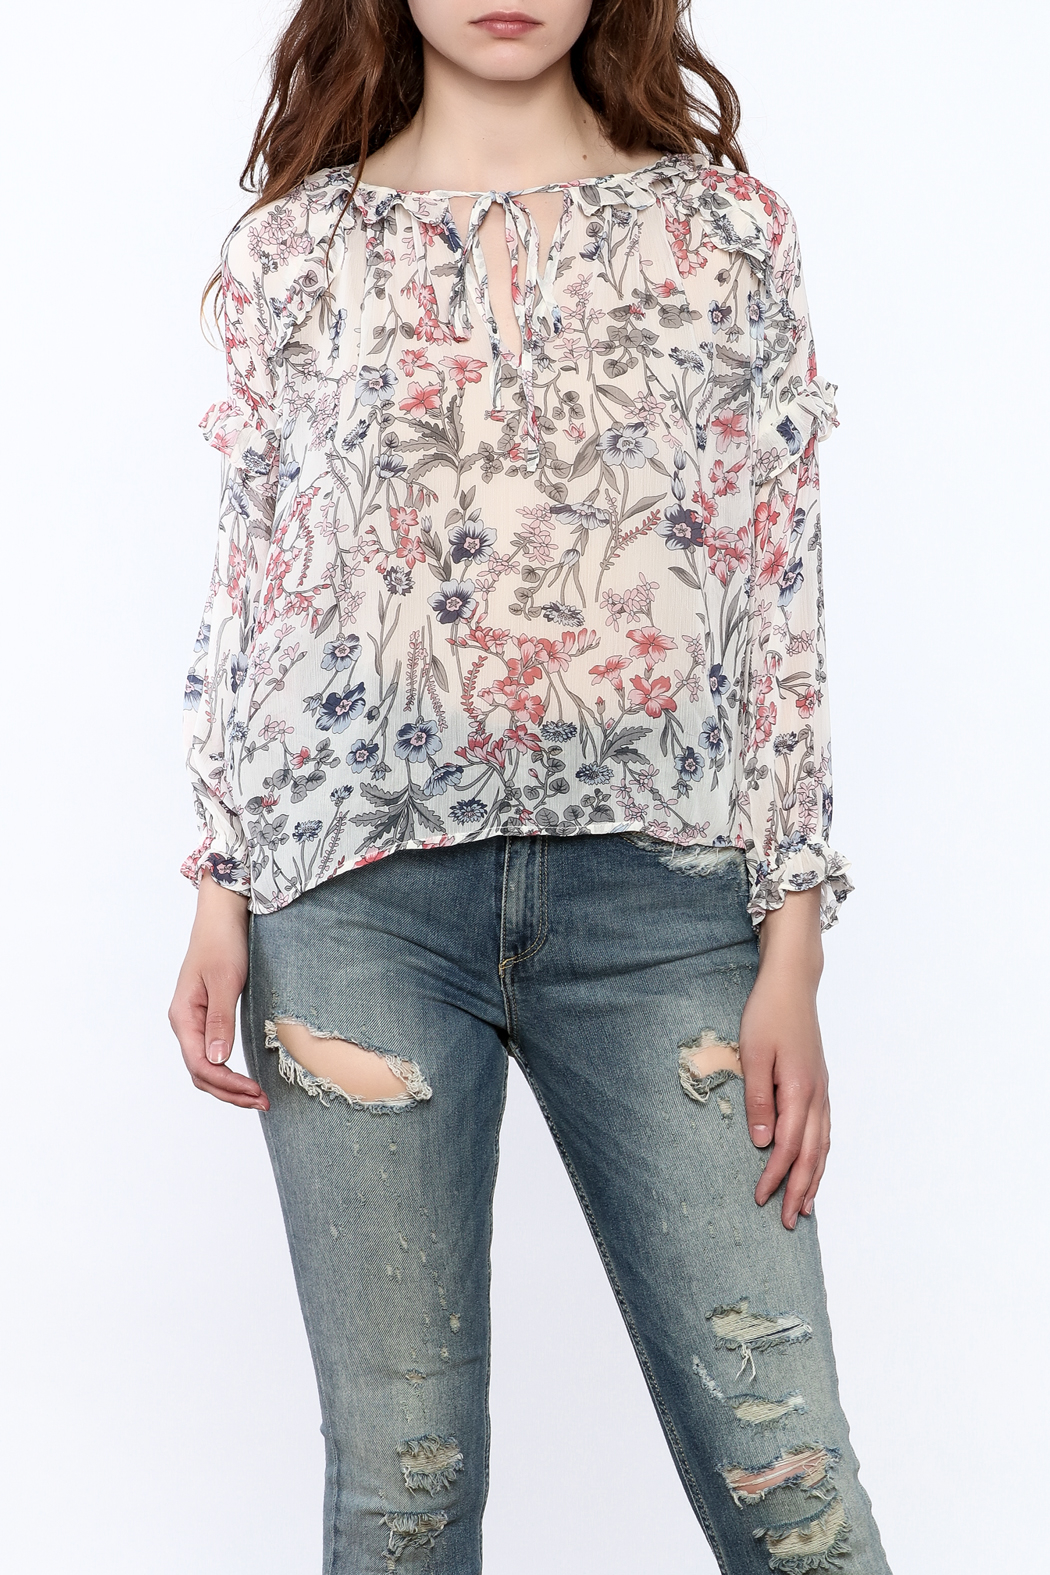 re:named Lightweight Floral Print Blouse - Front Cropped Image